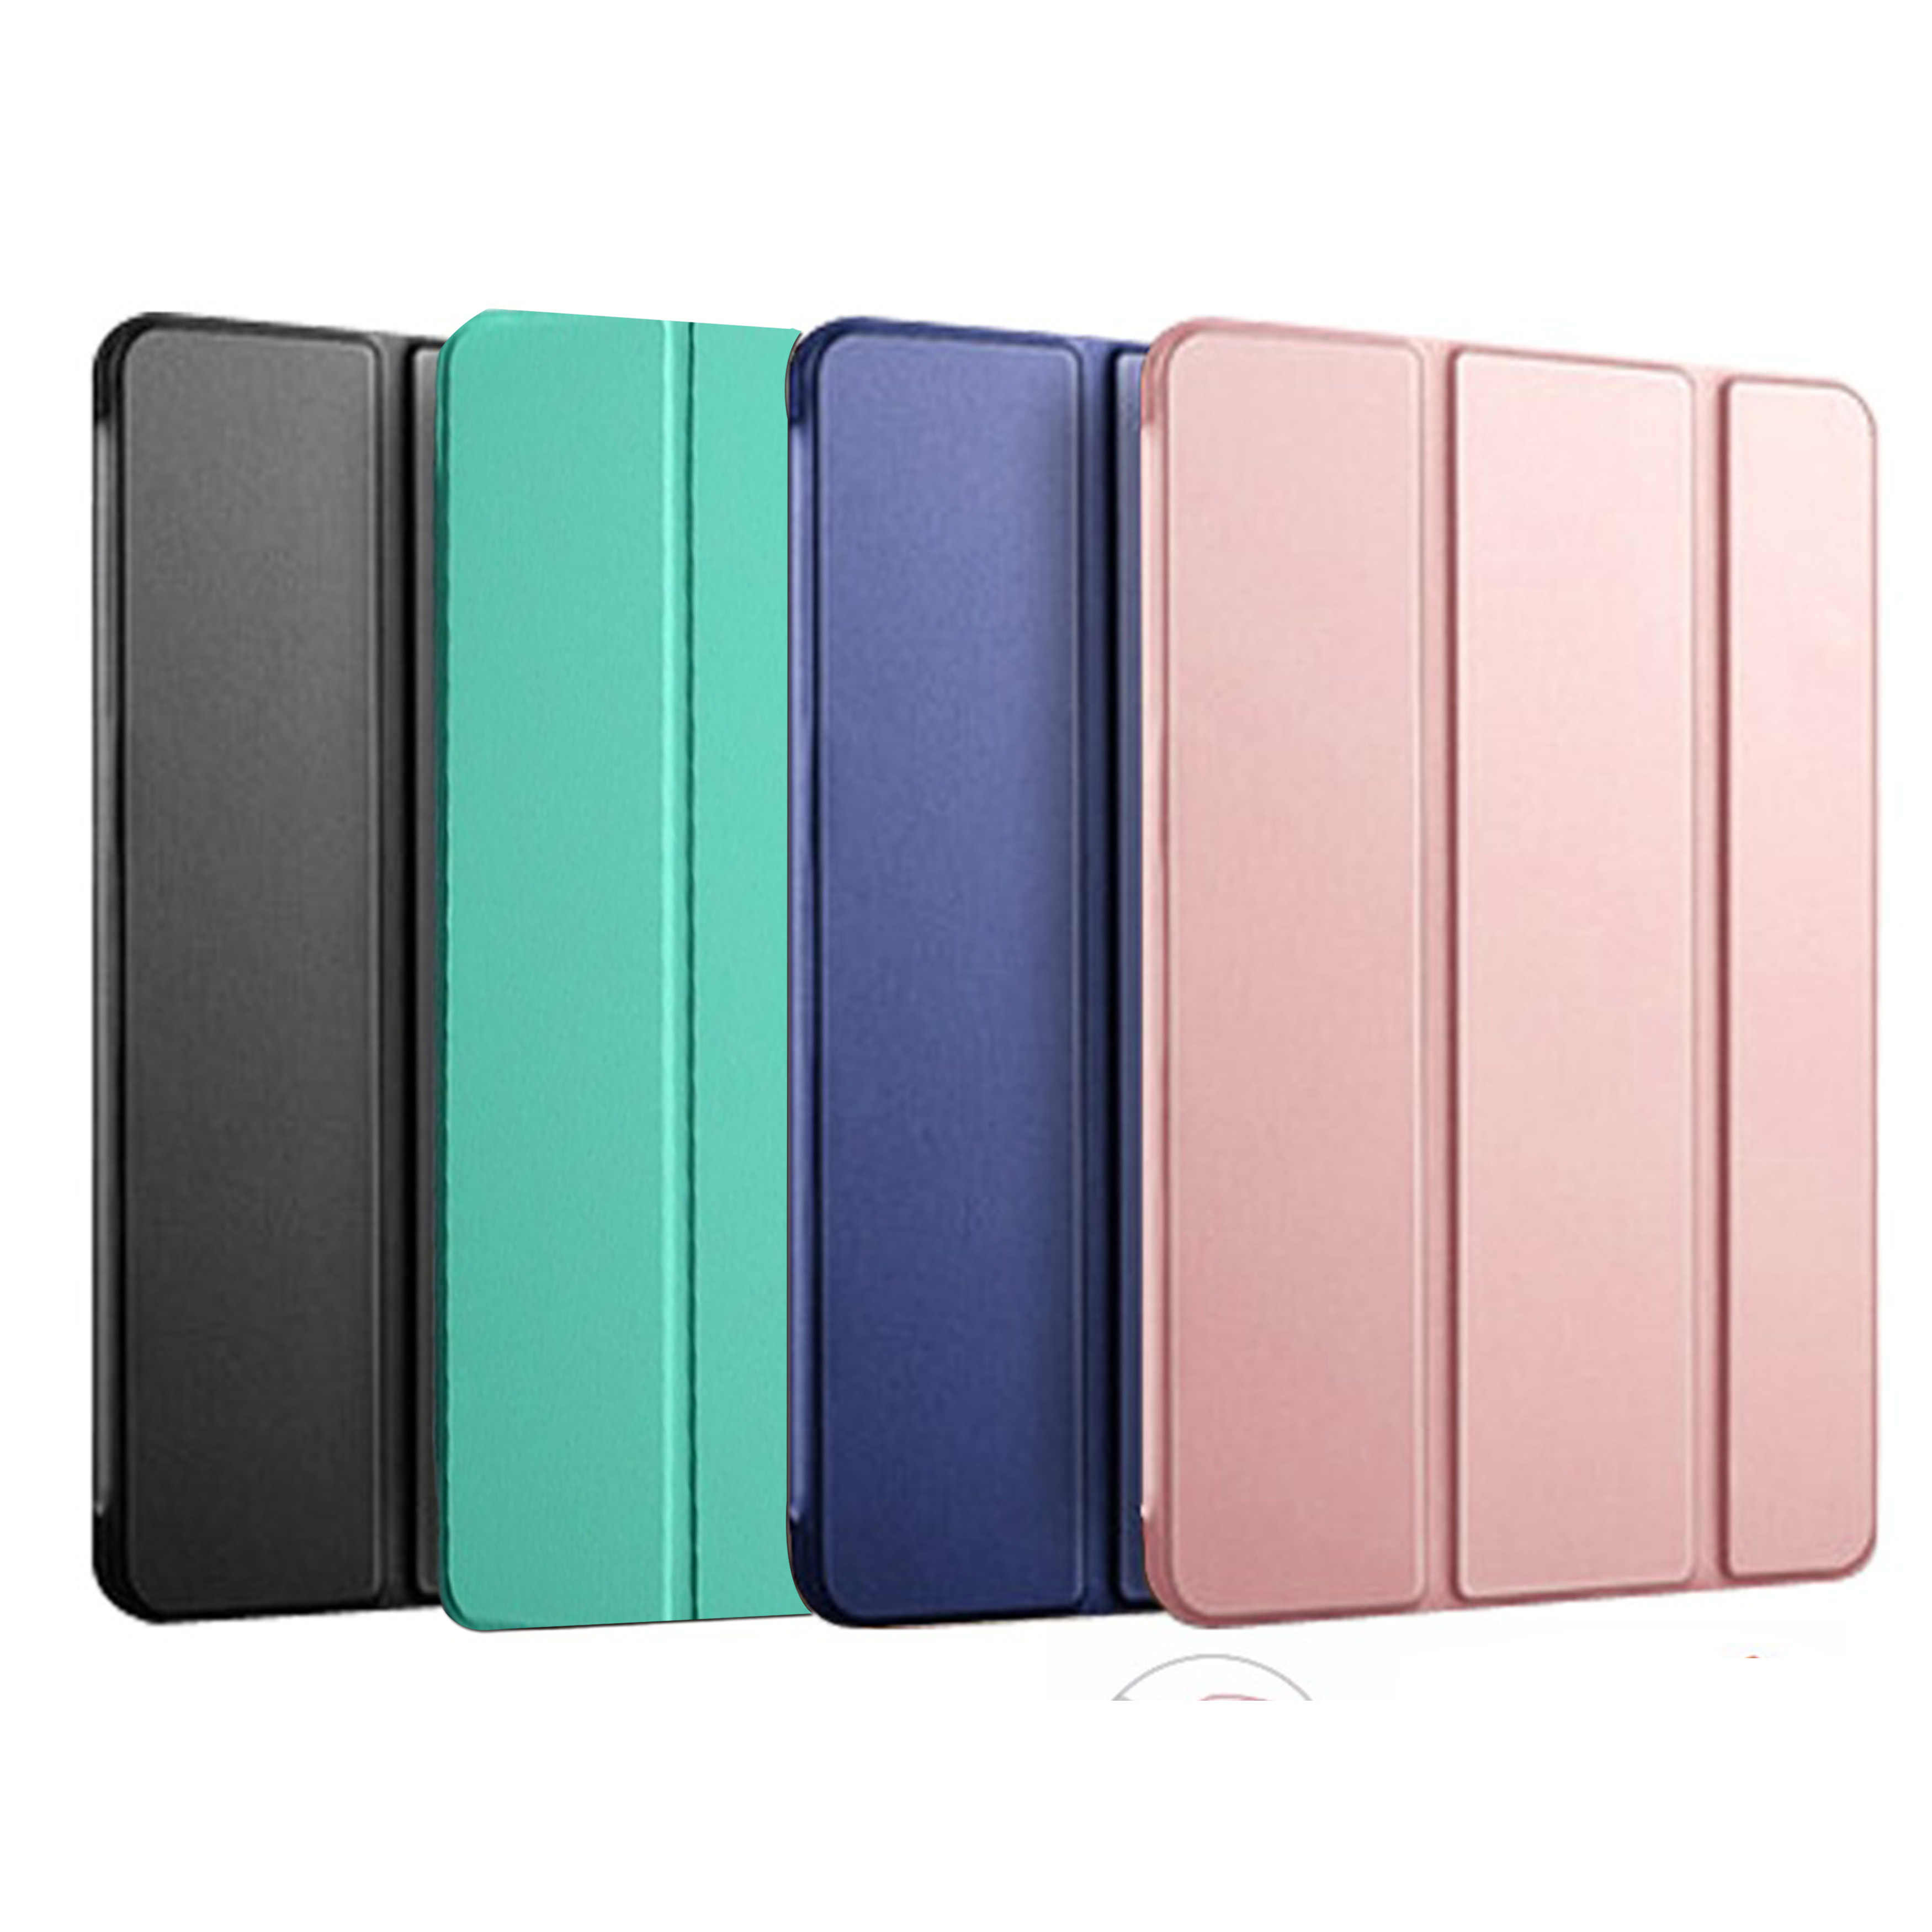 Funda de Tablet para iPad 10,2 pulgadas 2019 7th Gen A2197 A2200 A2198 fundas PU Ultra delgado wake Smart funda para iPad 10,2 pulgadas